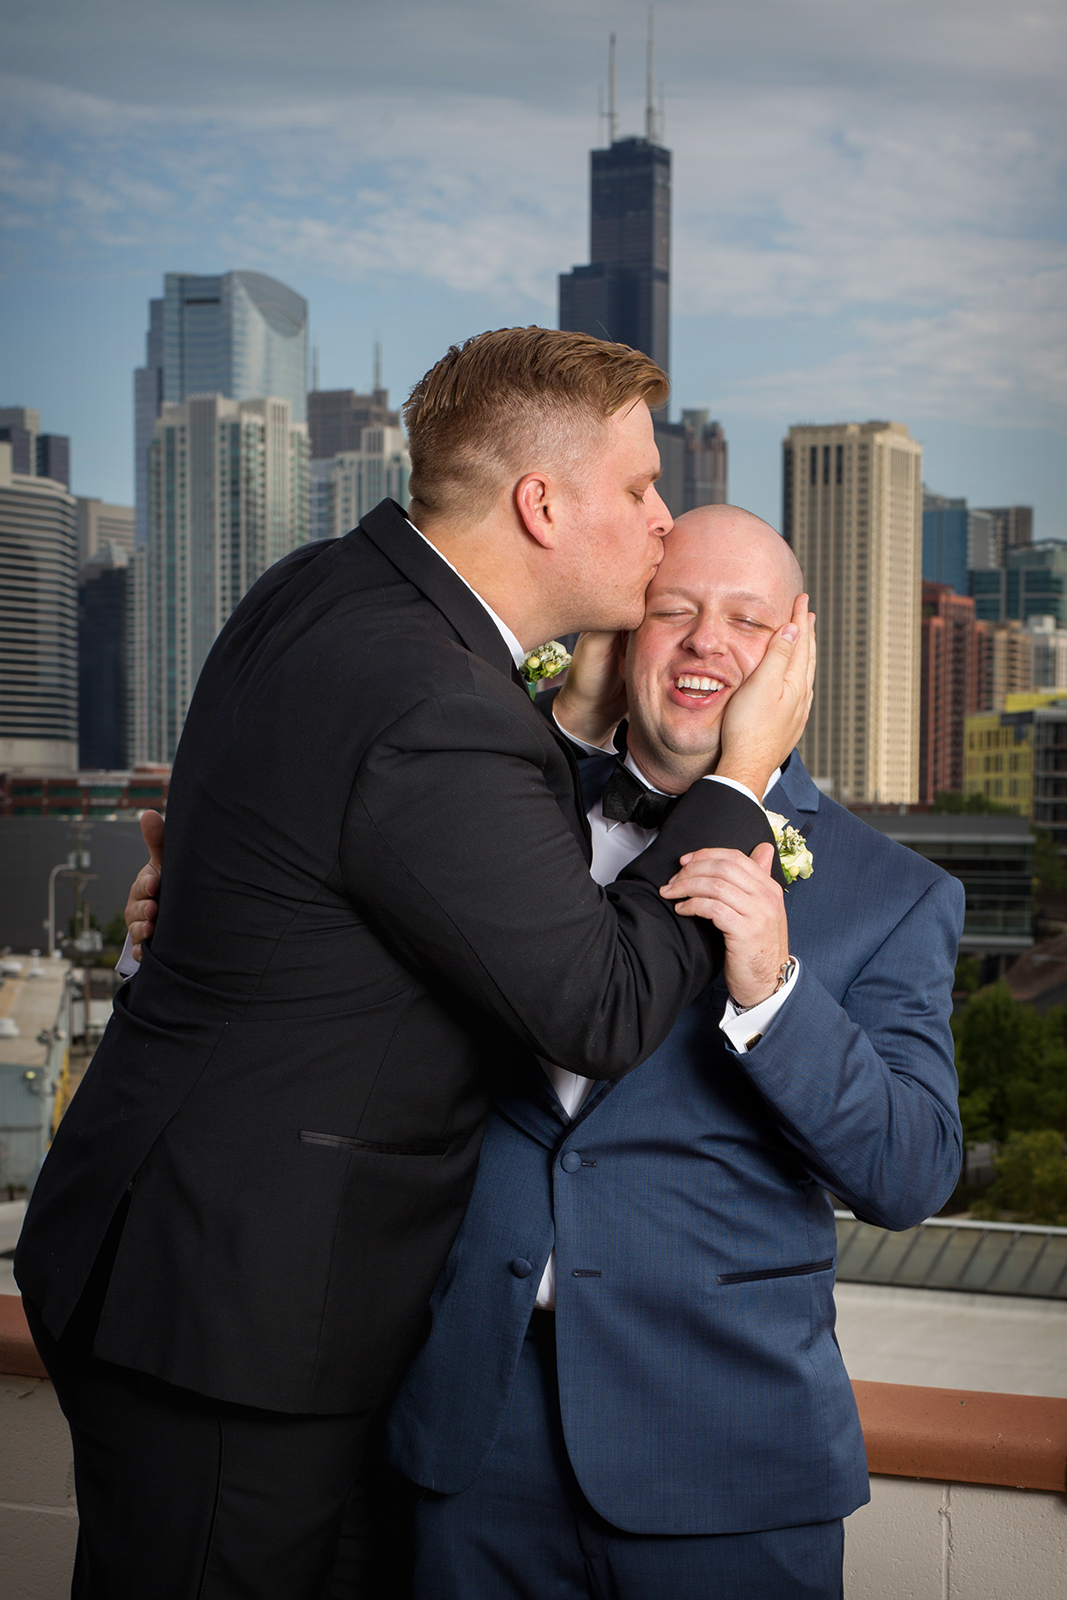 Best Man kissing groom on head